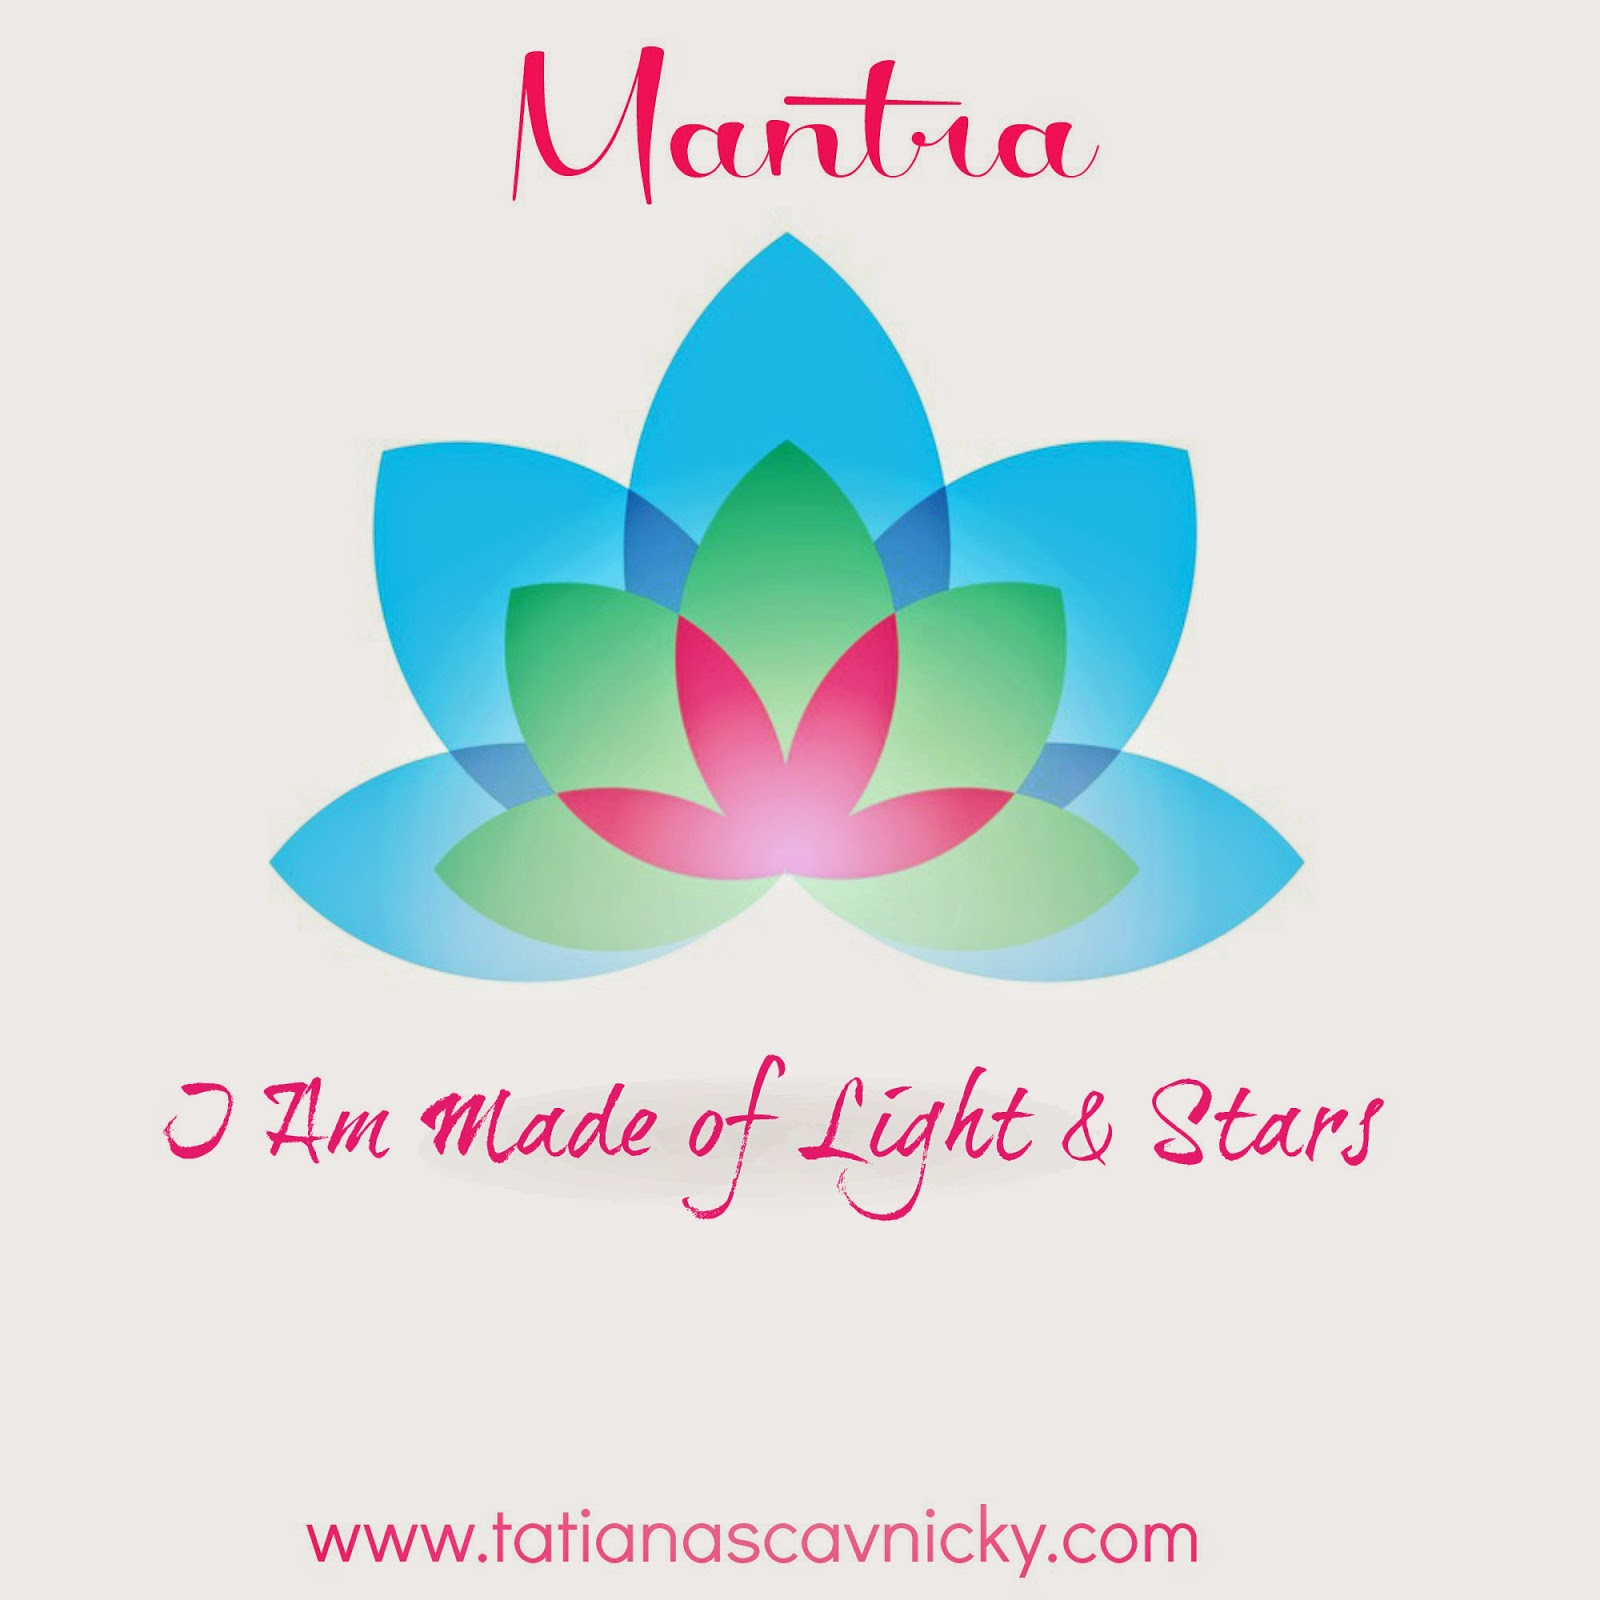 Mantra discount coupon